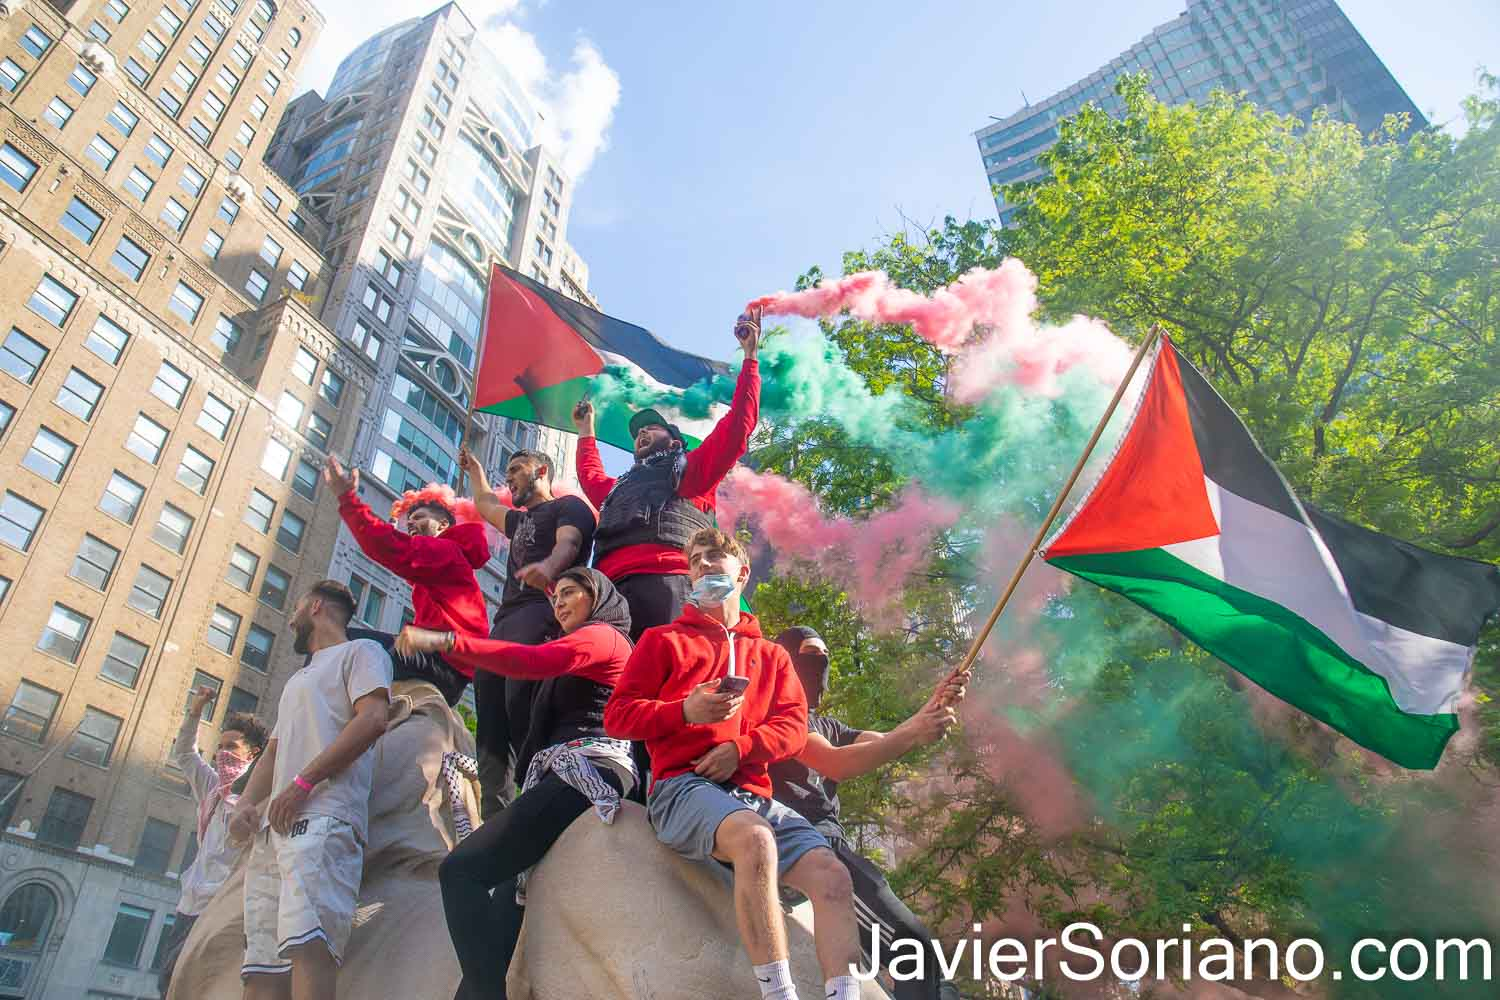 """Tuesday, May 18, 2021. New York City - Thousands of Palestinians, Jews, Latinas, Latinos, Asians, Blacks, Whites, and others shut down different streets in New York City to support the Palestine Strike. BDS said, """"Palestinians in Jerusalem and across Historic Palestine are observing General Strike (on Tuesday, May 18, 2021) to protest Israel's massacres in Gaza and settler-colonial and apartheid repression and ethnic cleansing against Palestinian communities everywhere."""" People gathered in front of the zionist (Israel) mission to the United Nations. After the rally, demonstrators marched through different streets in Manhattan. Organizers called the demonstration: """"Shut down Zionism to support the #PalestineStrike."""" The demonstration was organized by NY4Palestine, Al-Awda NY: The Palestine Right to Return Coalition, Samidoun Palestinian Prisoner Solidarity Network, Within our Lifetime • United for Palestine, Jews for Palestinian Right of Return and Labor for Palestine. THIS PHOTO: Demonstrators in front of the New York Public Library (188 Madison Avenue and 34th Street). Photo by Javier Soriano/www.JavierSoriano.com"""